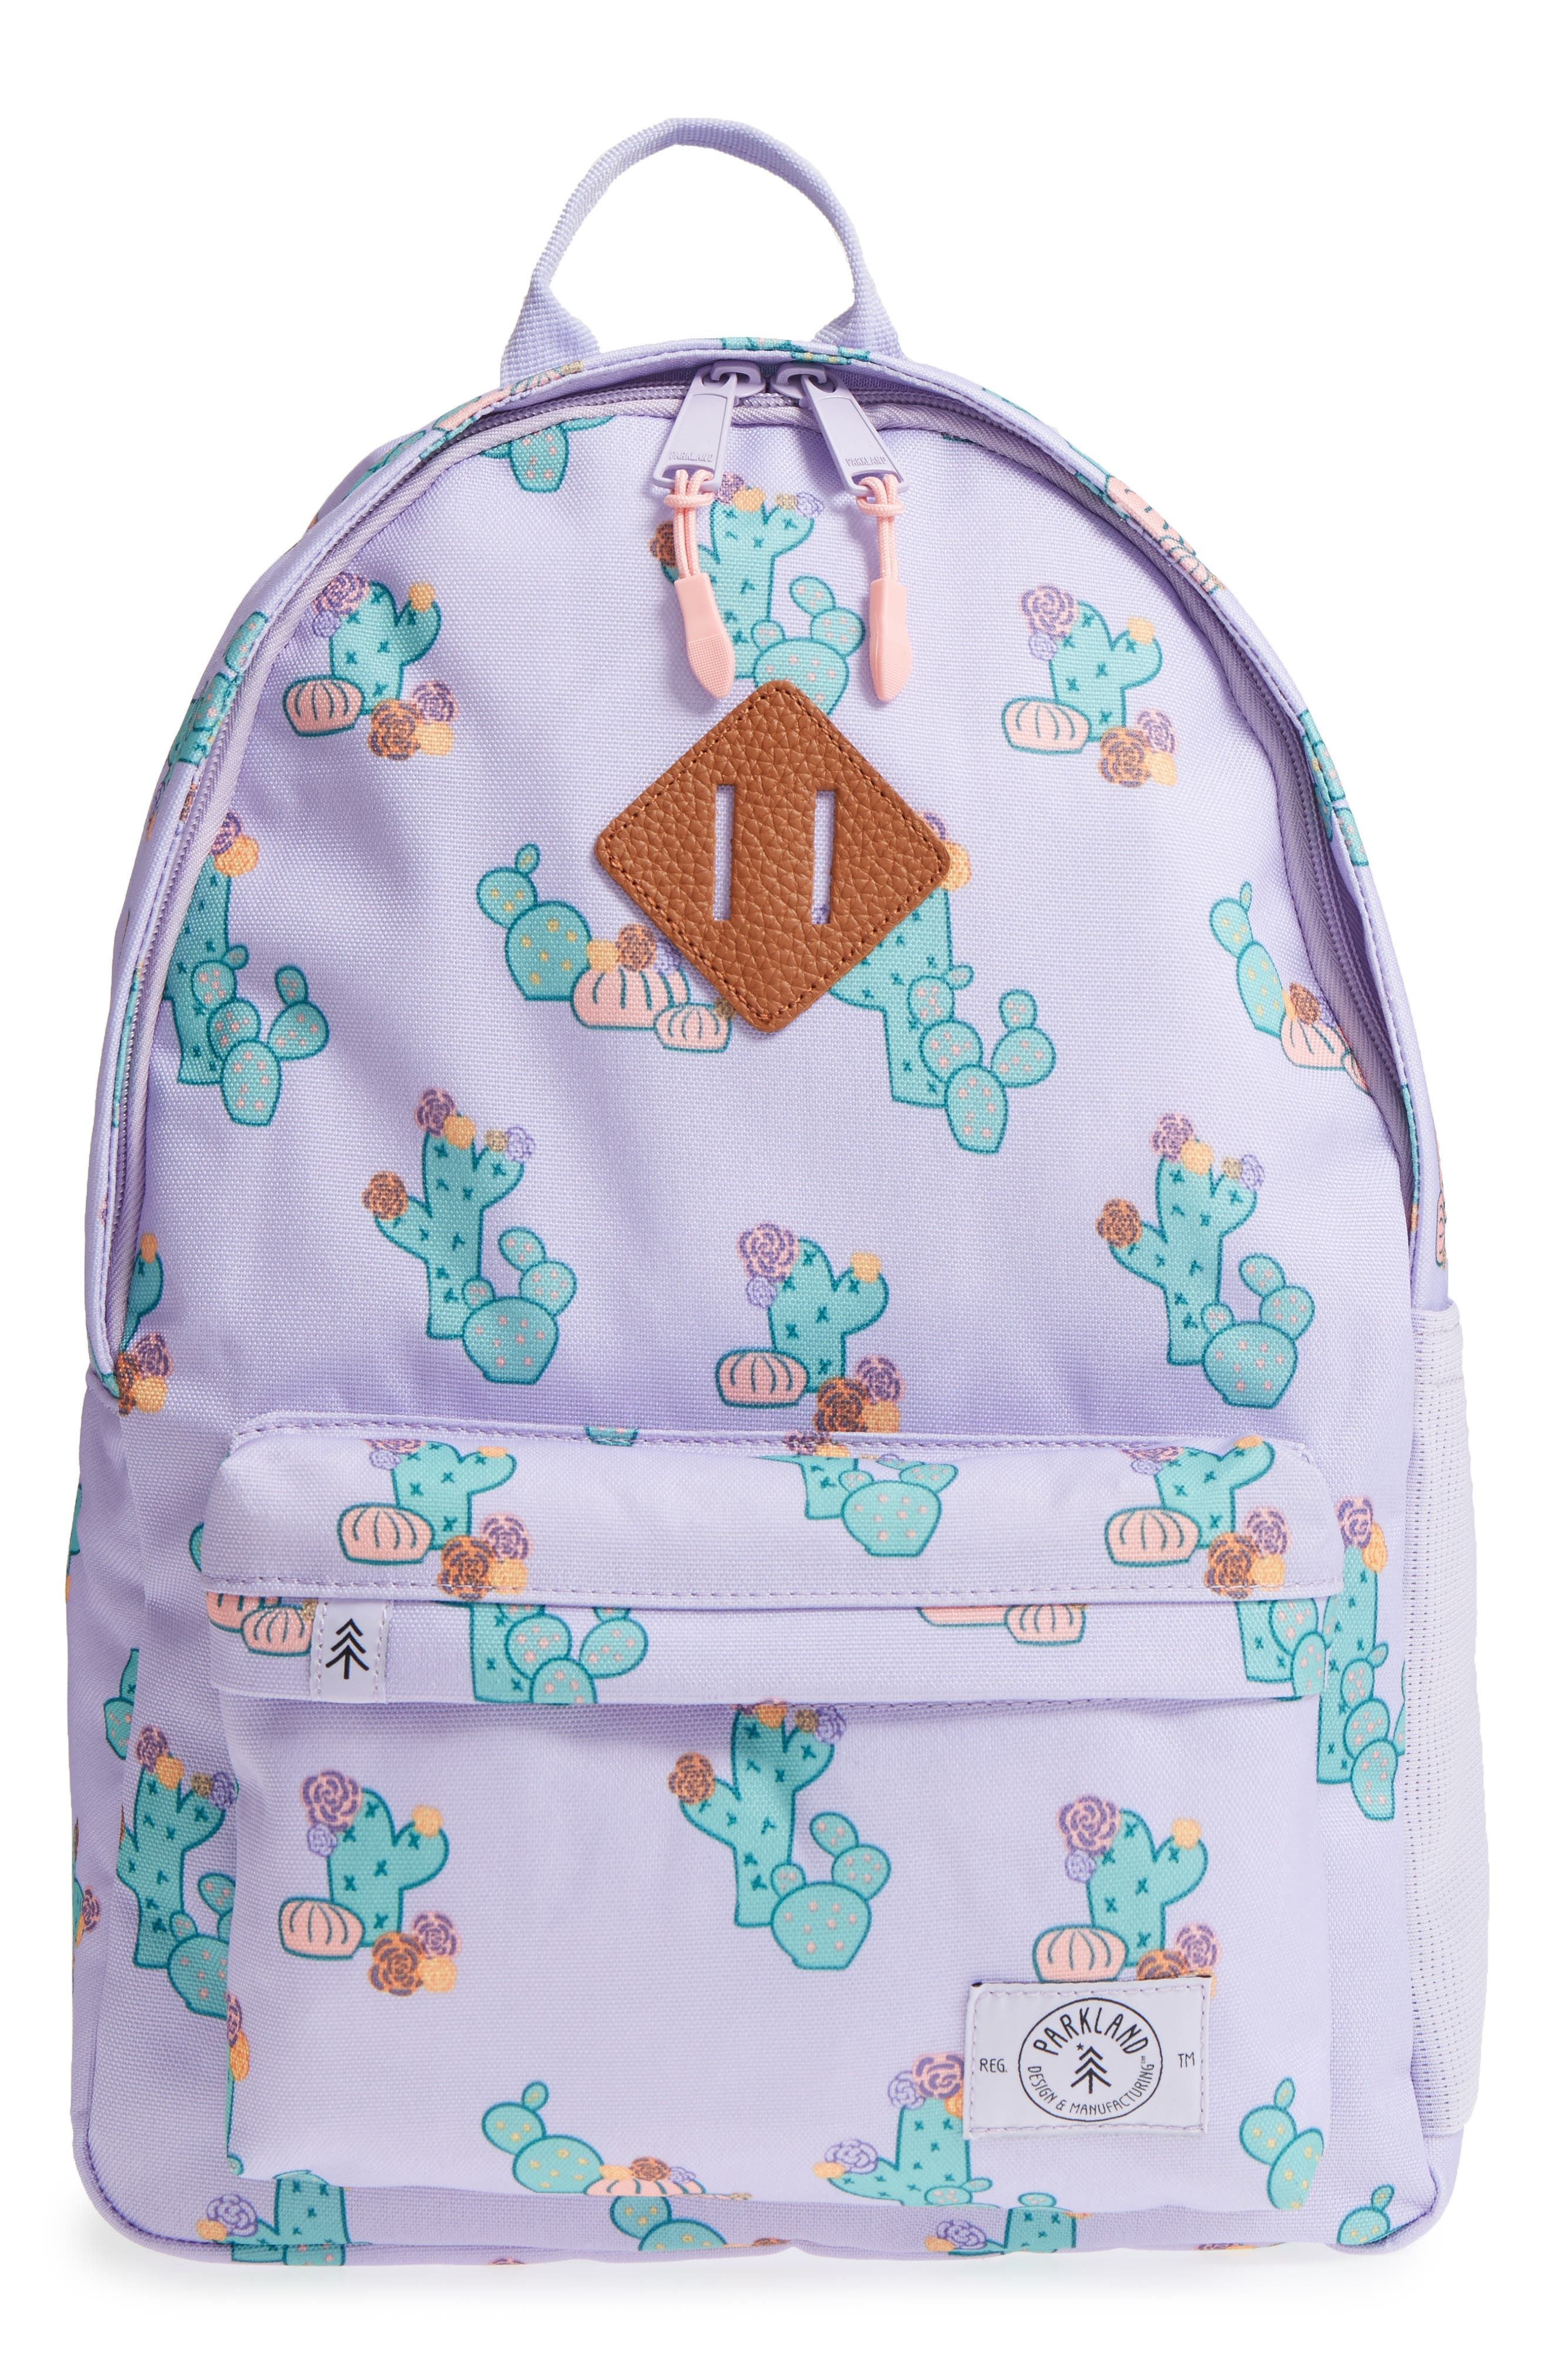 Bayside Cactus Flower Backpack,                         Main,                         color, Cactus Flower